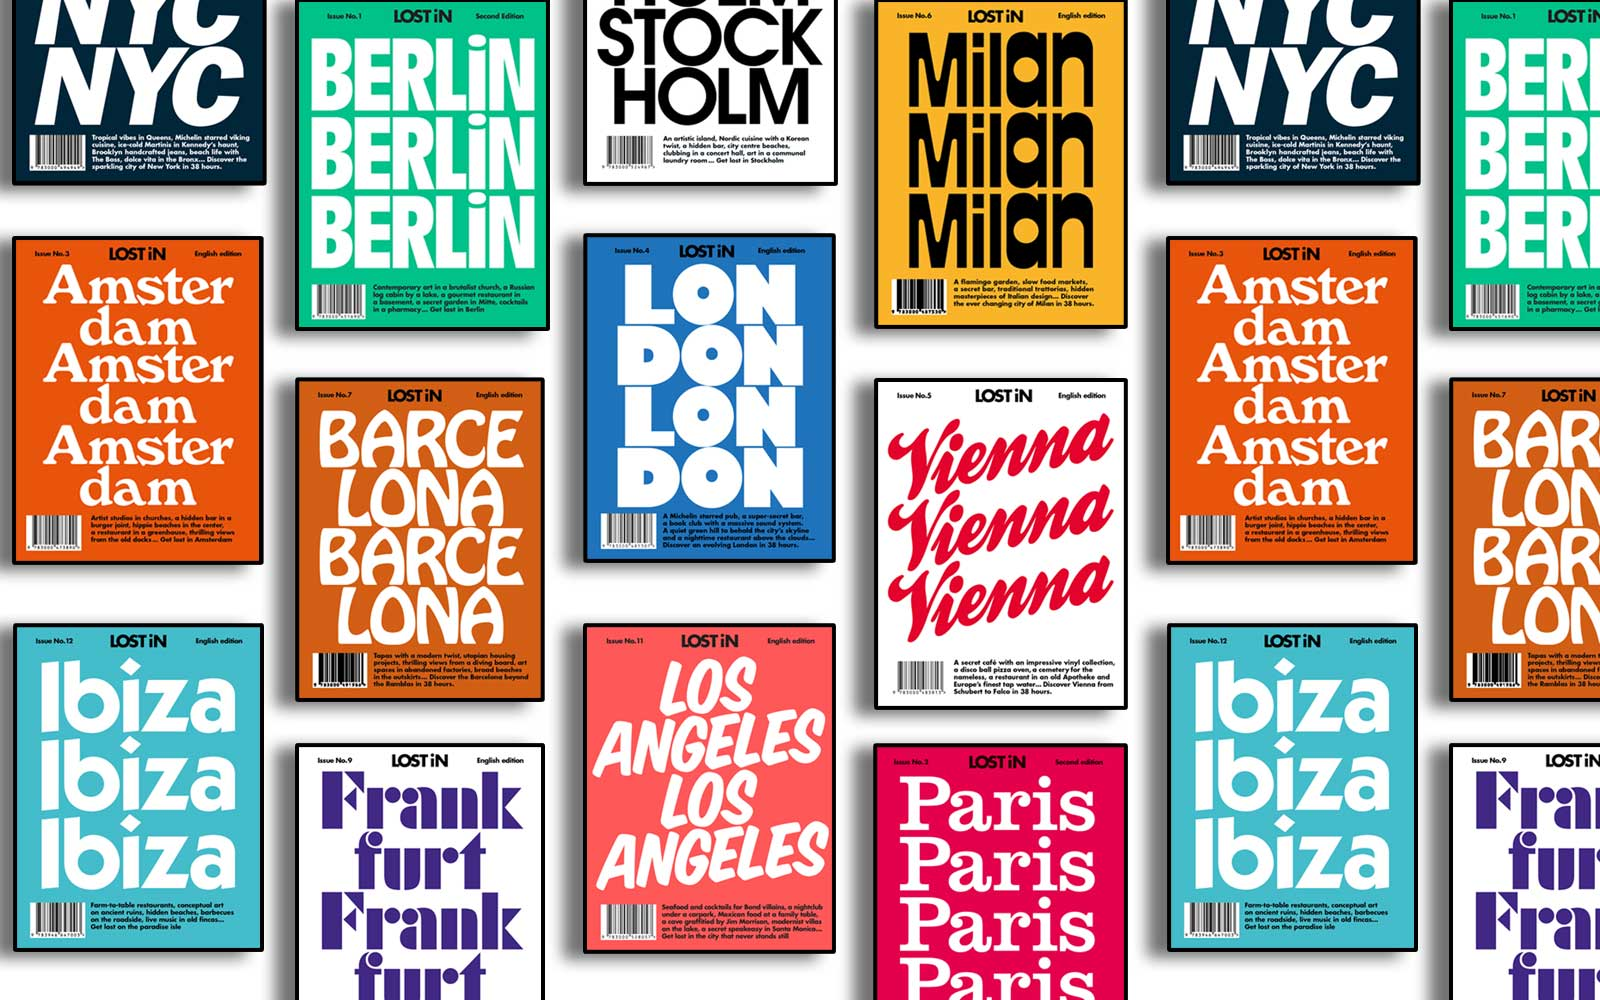 LOST iN City Guides Make it Easy to Travel Like a Local